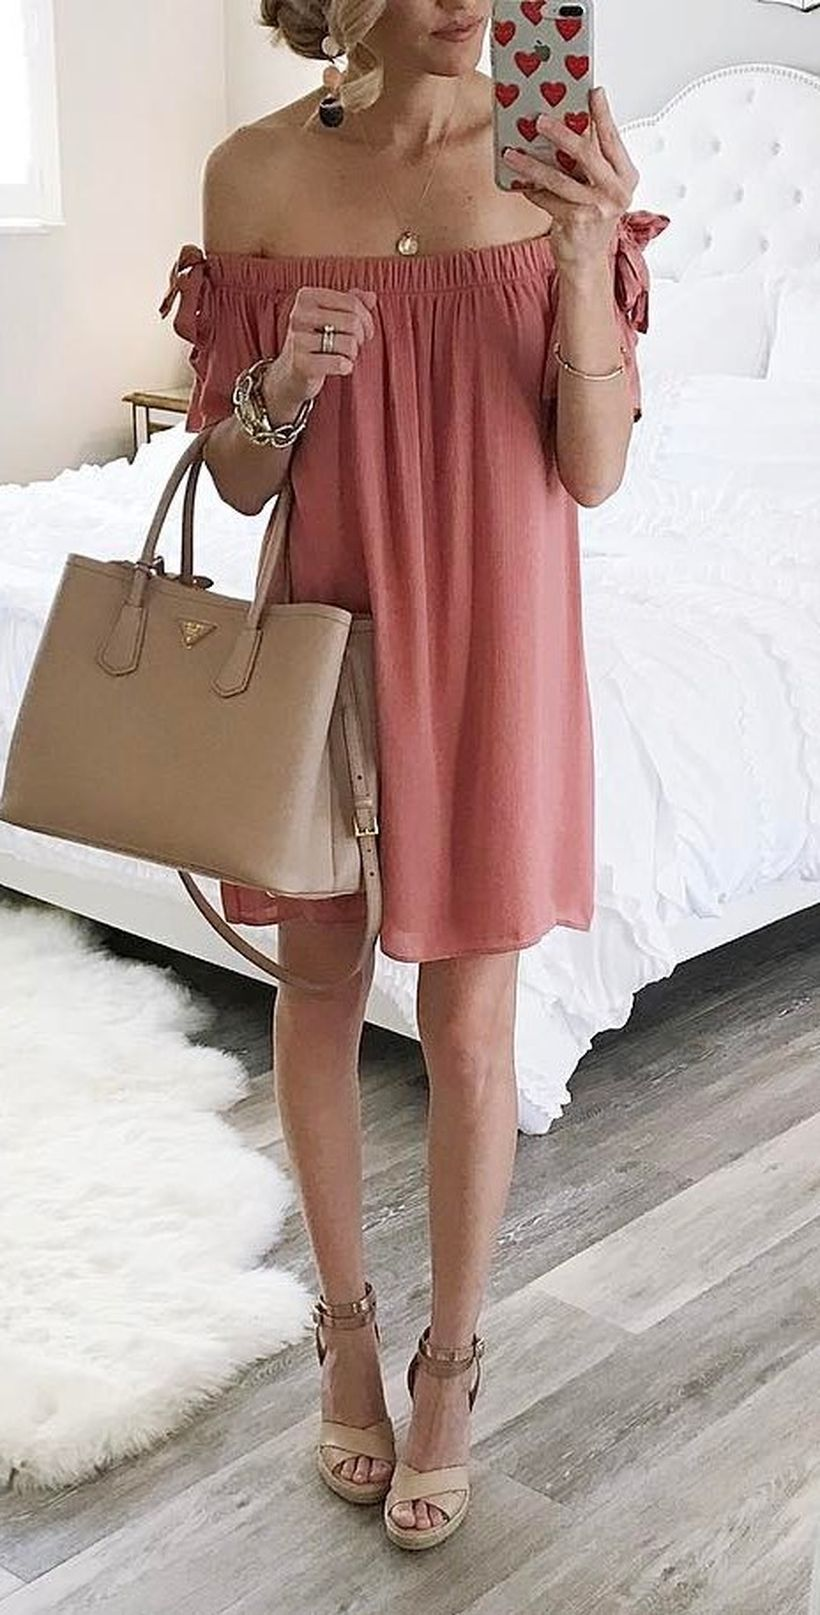 stylish leather tote bags for work outfits ideas leather